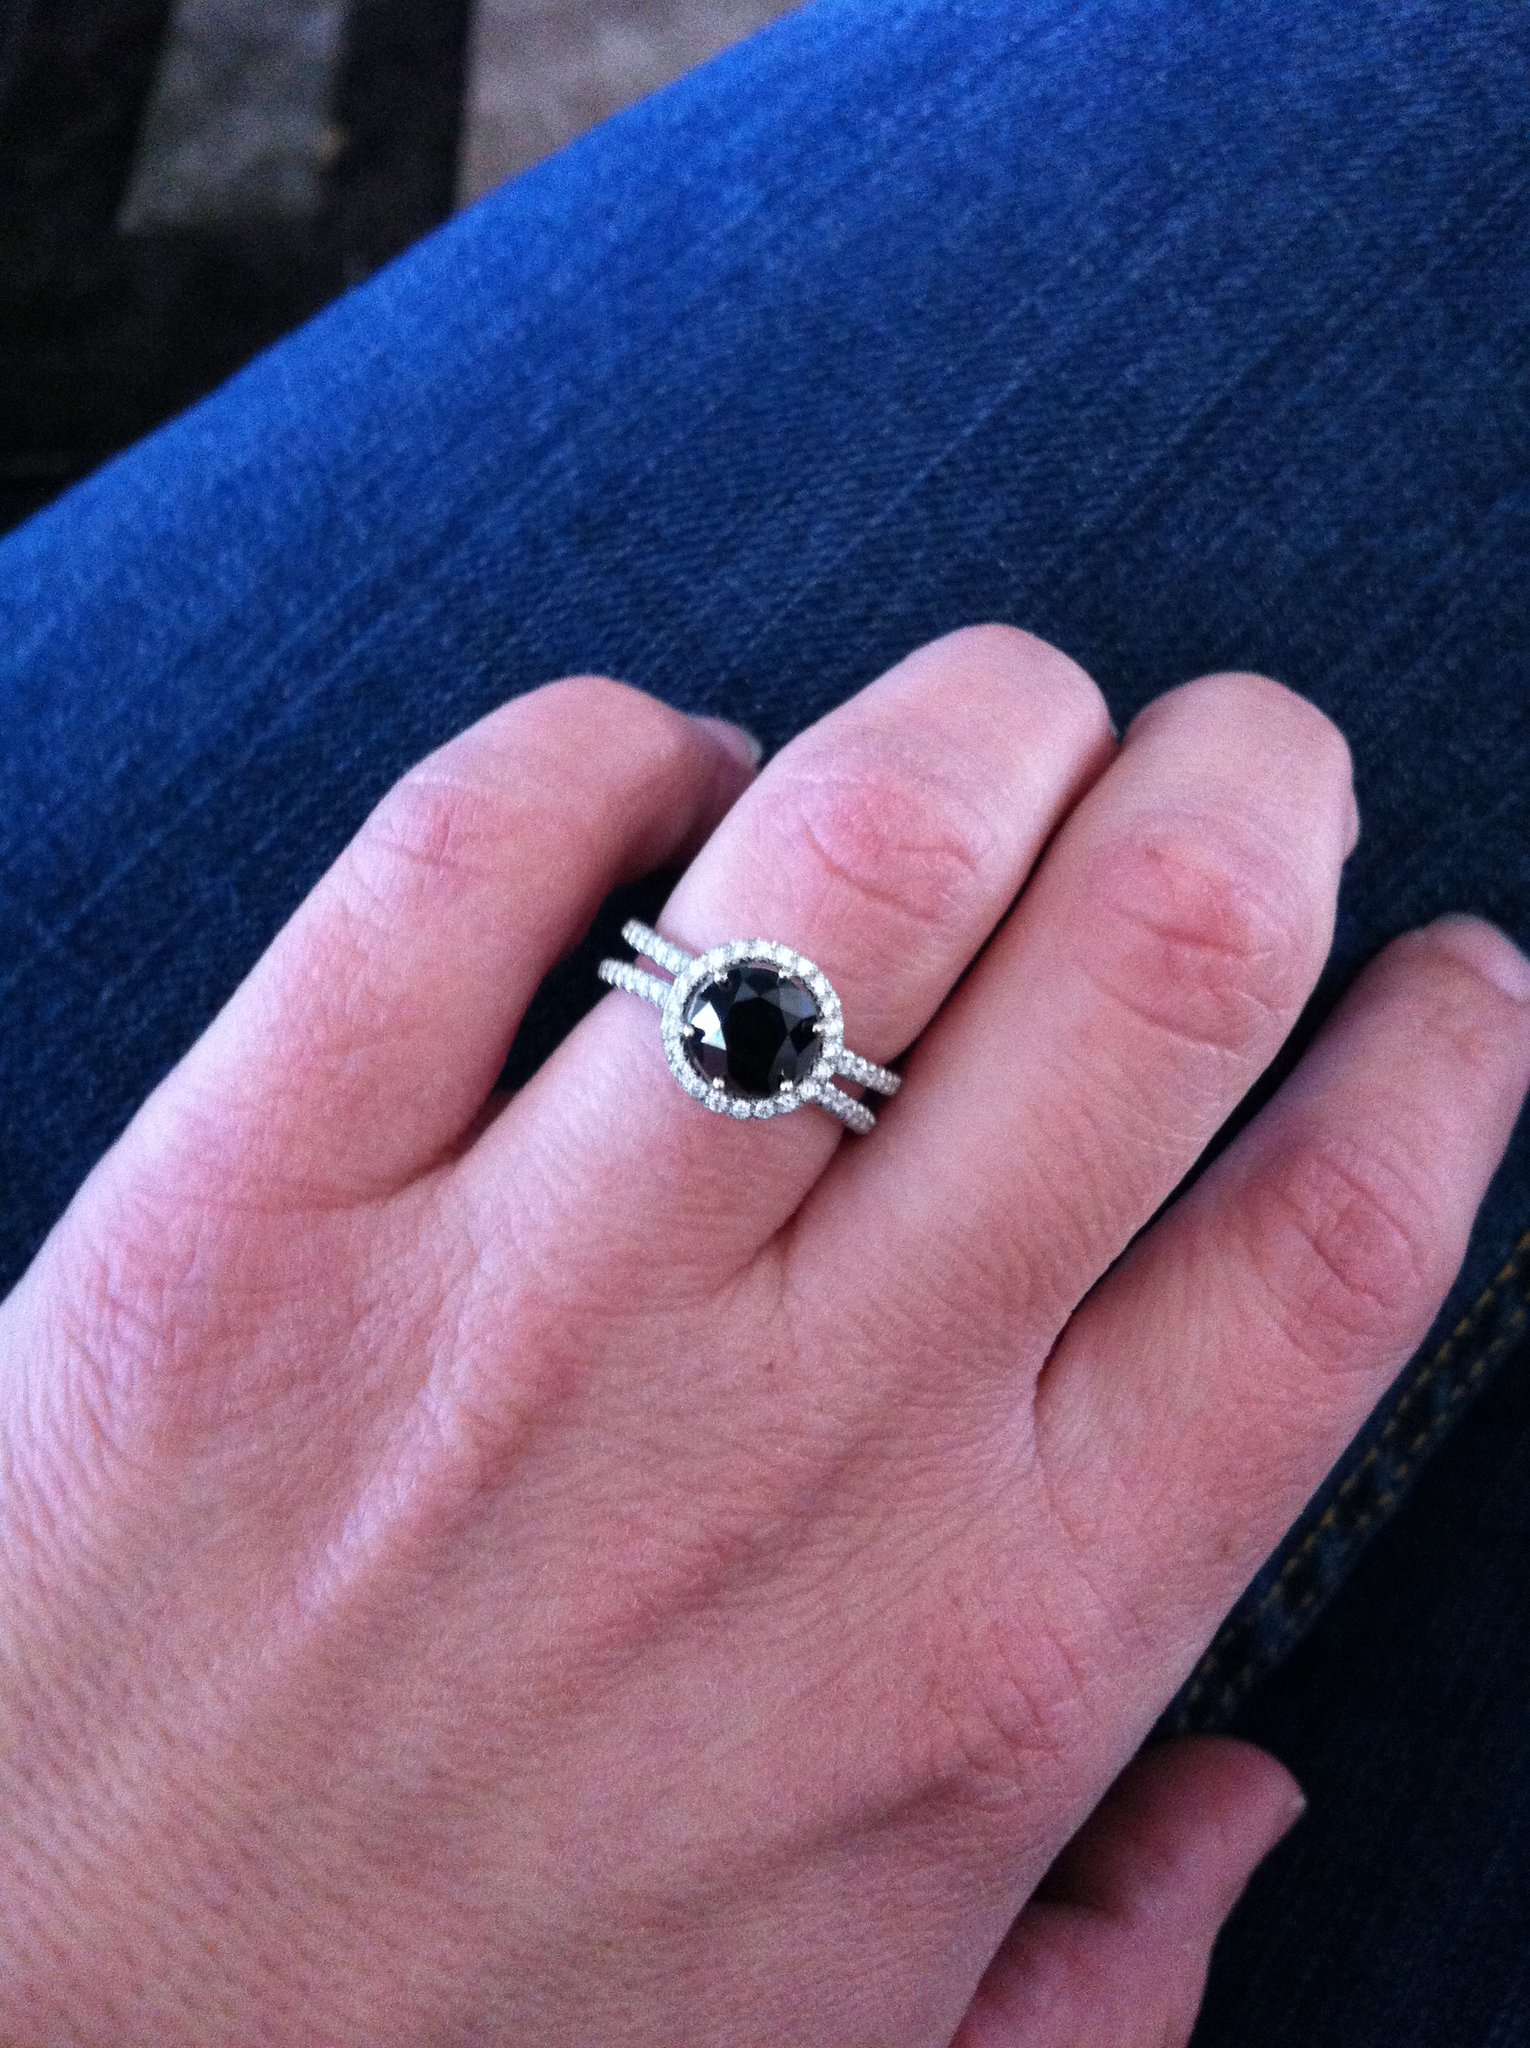 The ring :-)